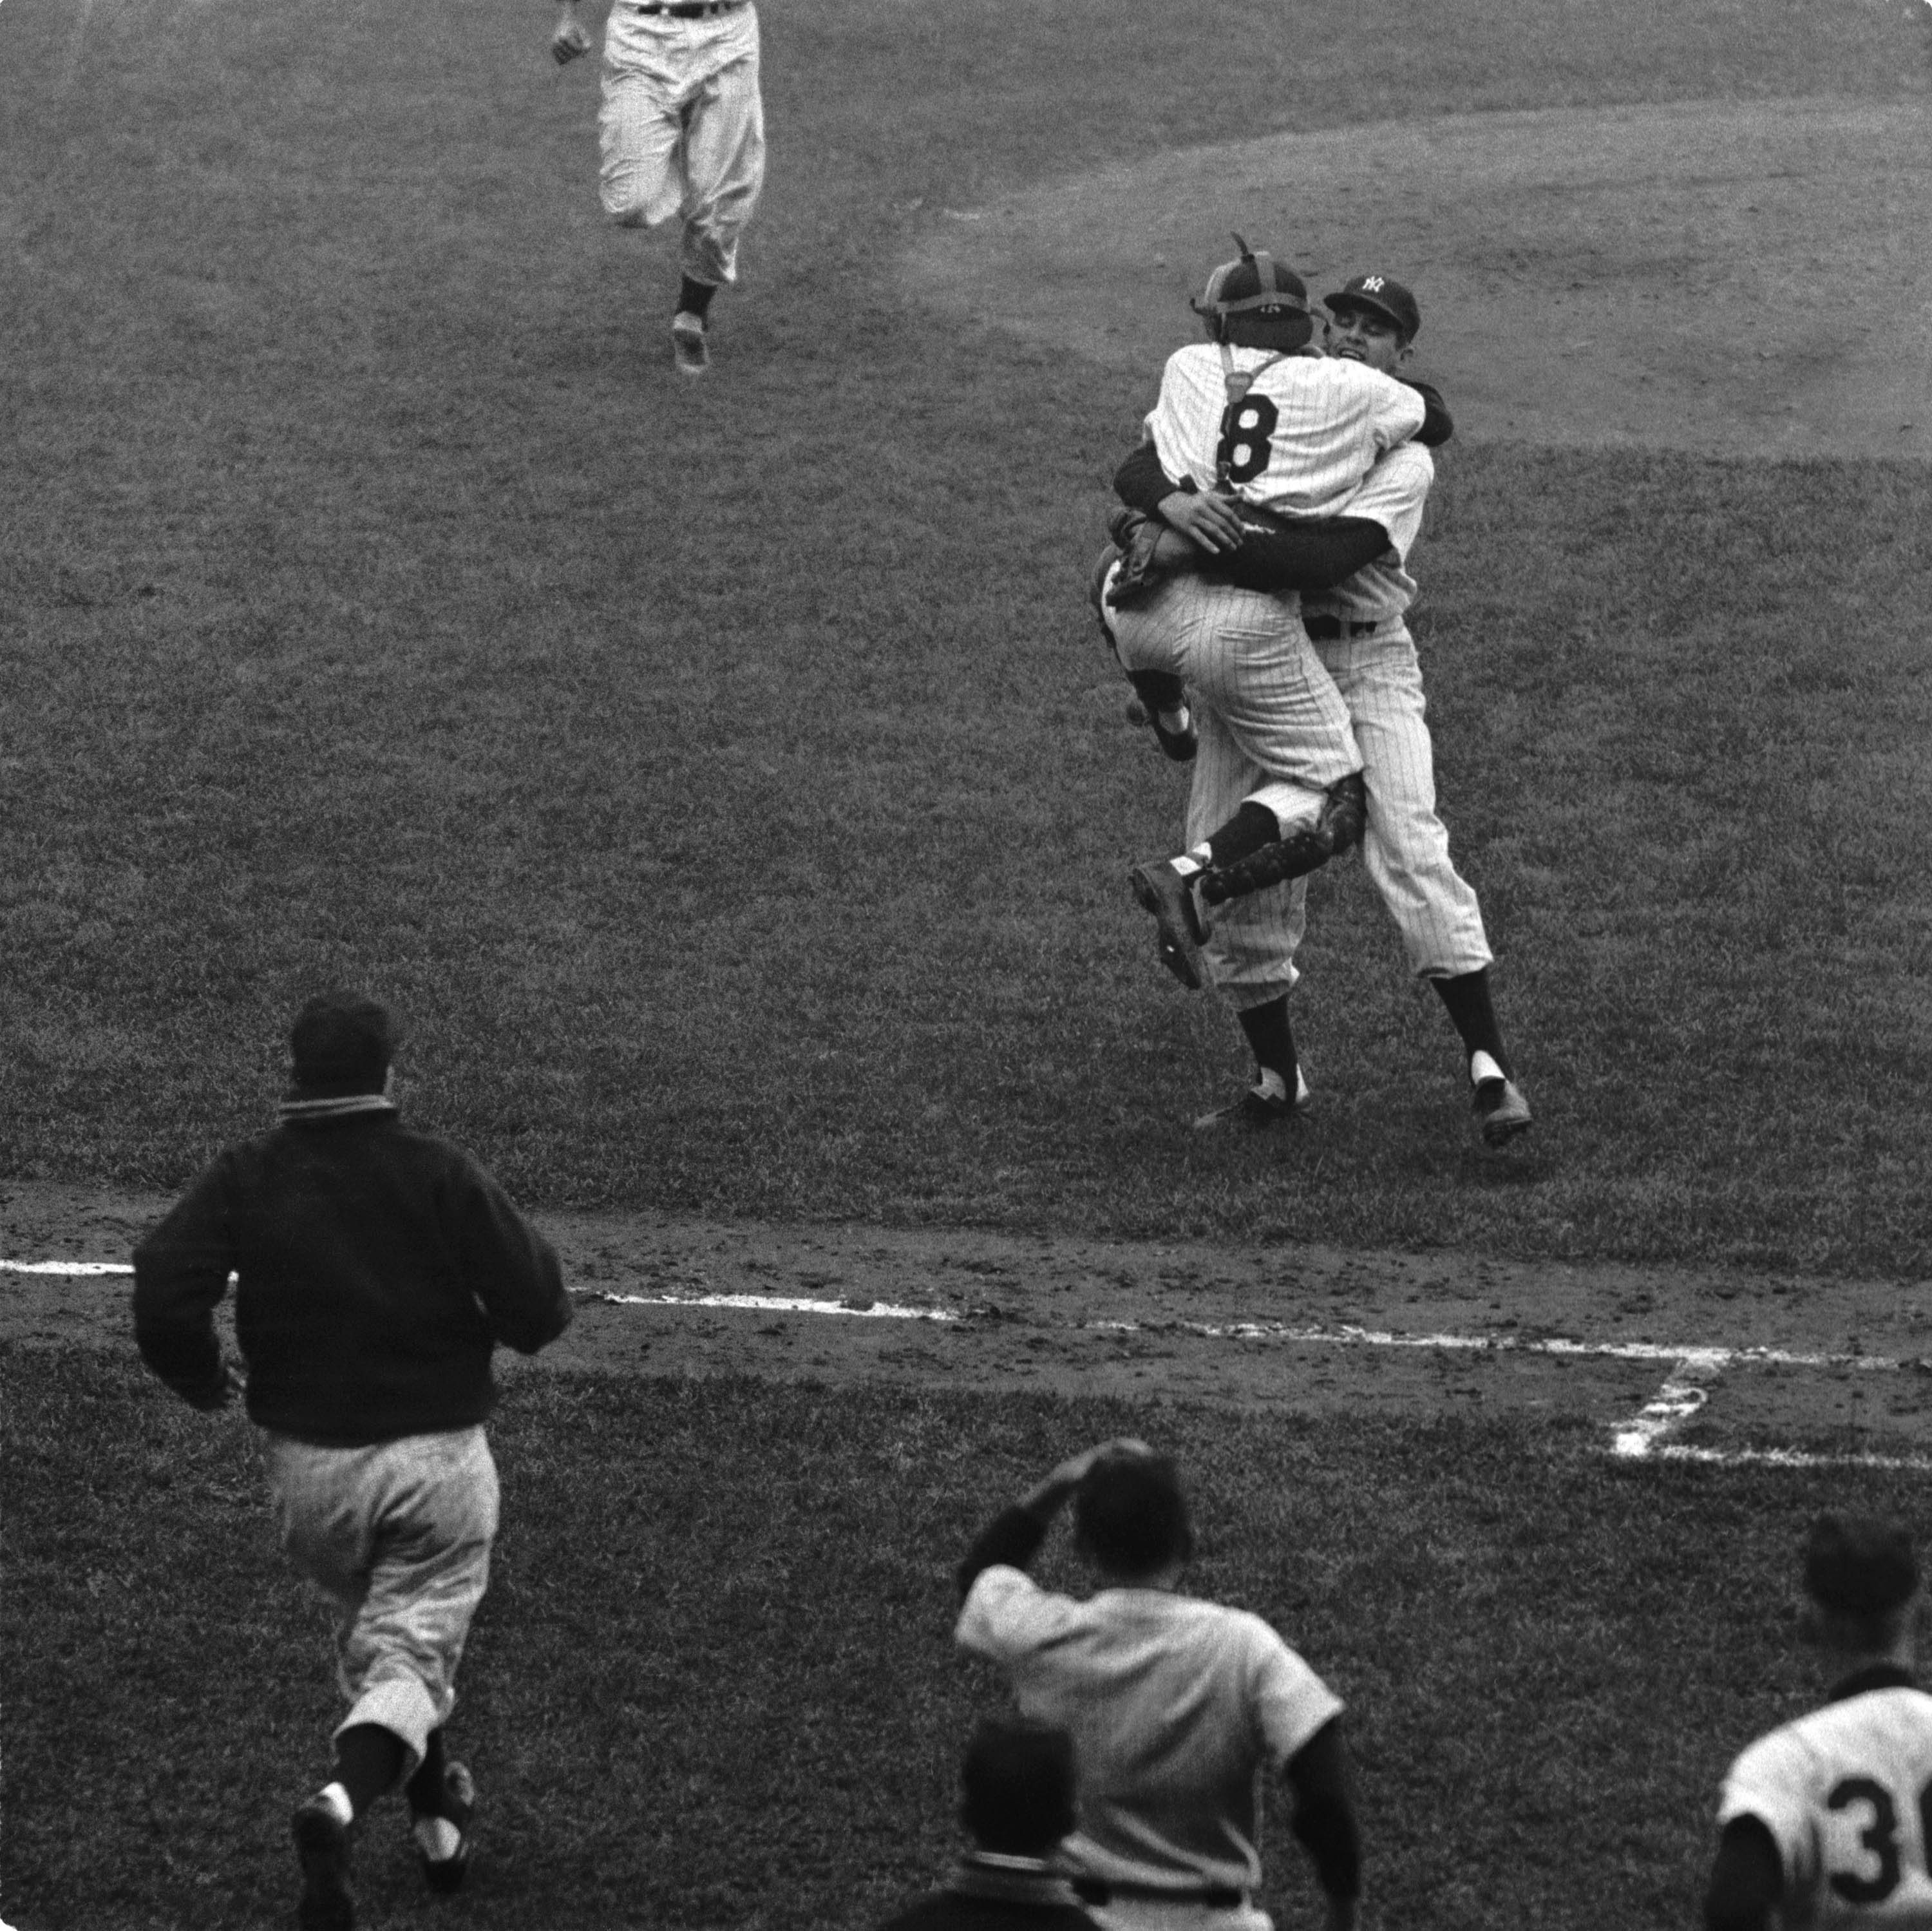 Oct. 8, 1956: Don Larsen of the New York Yankees pitches the only perfect game in World Series history, in Game 5 against the Brooklyn Dodgers.